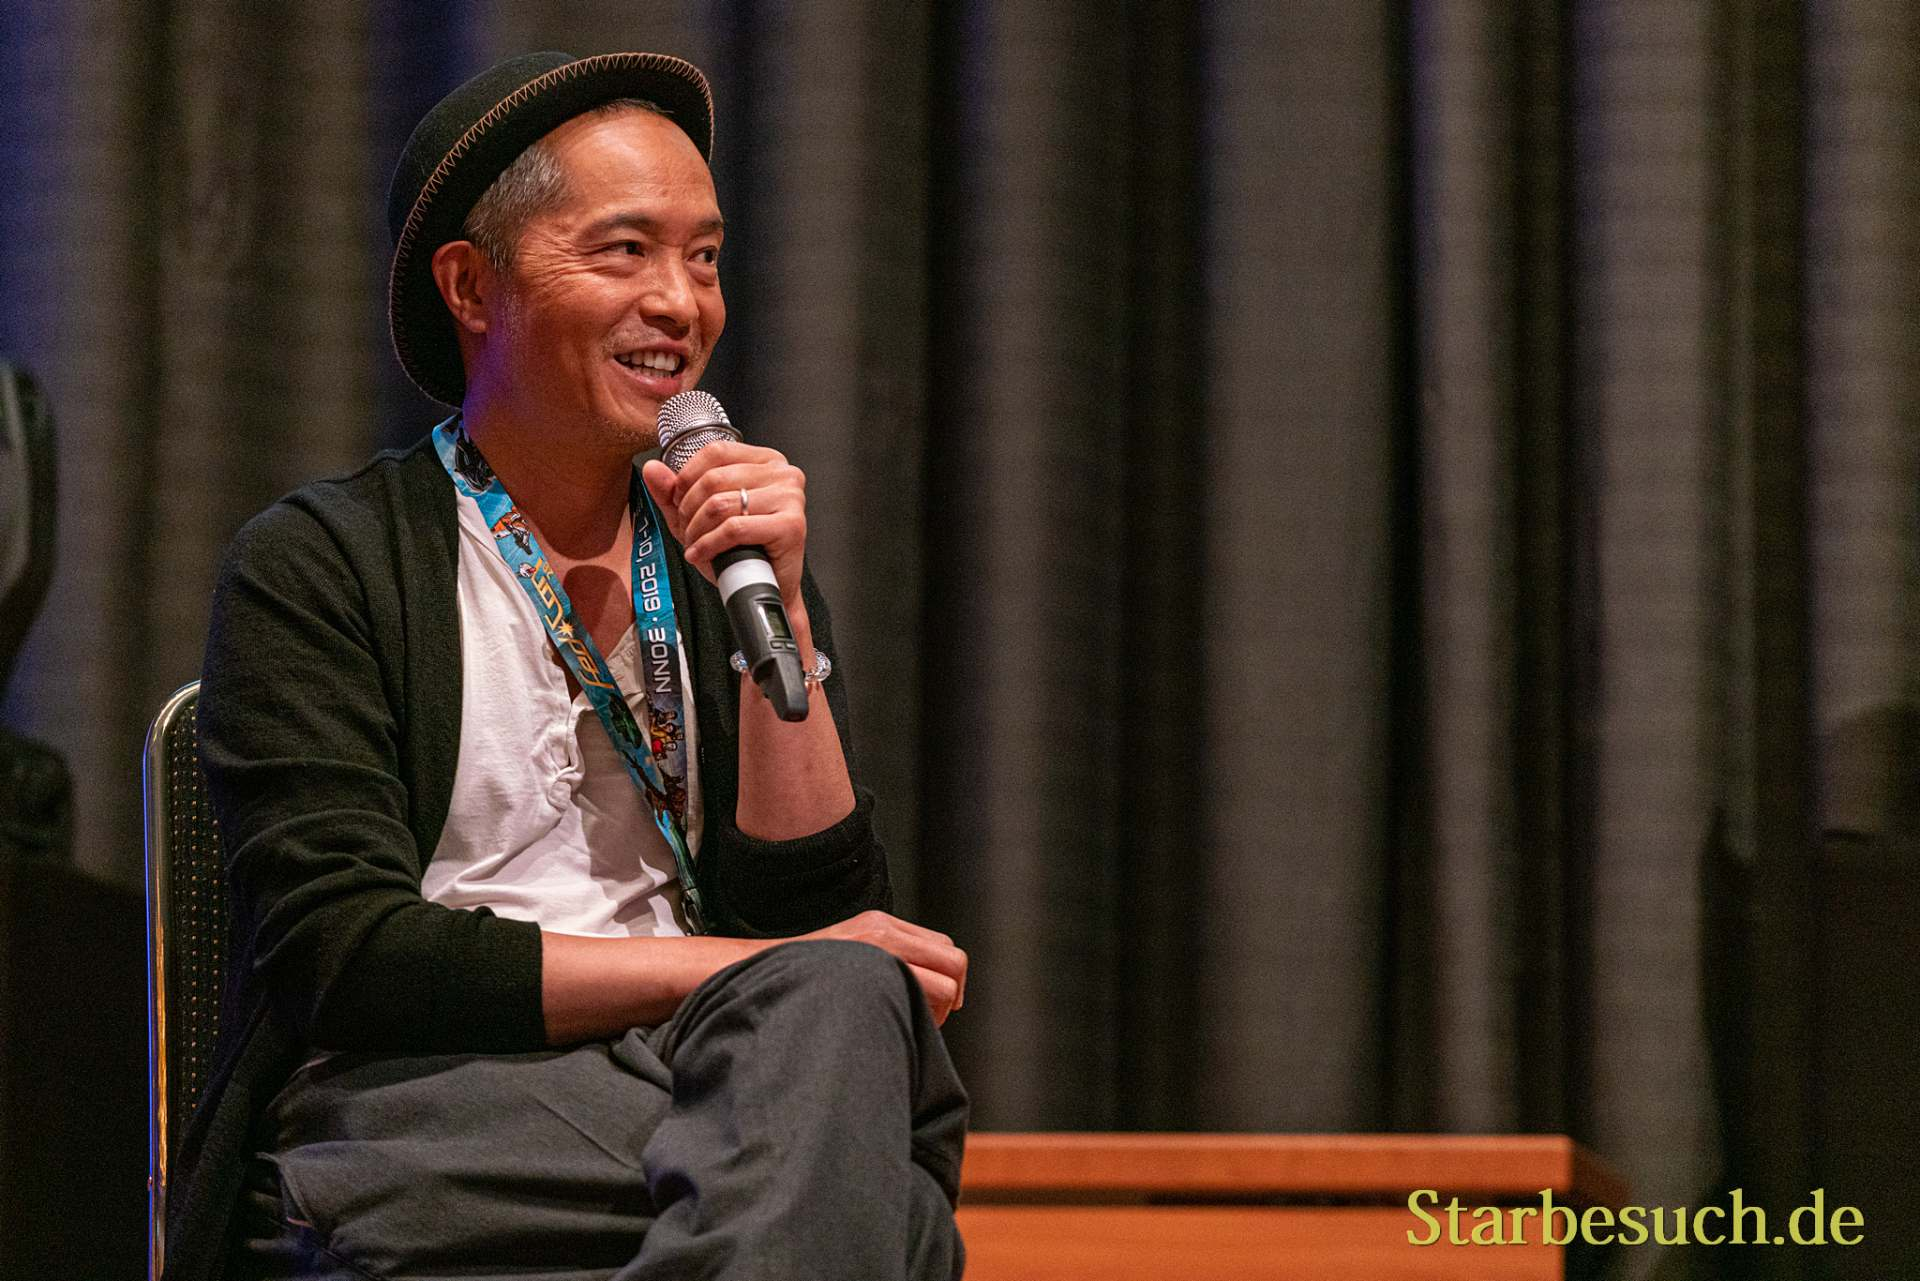 Bonn, Germany - June 8 2019: Ken Leung (*1970, American actor - Star Wars, LOST) talks about his experiences in the movie industry at FedCon 28